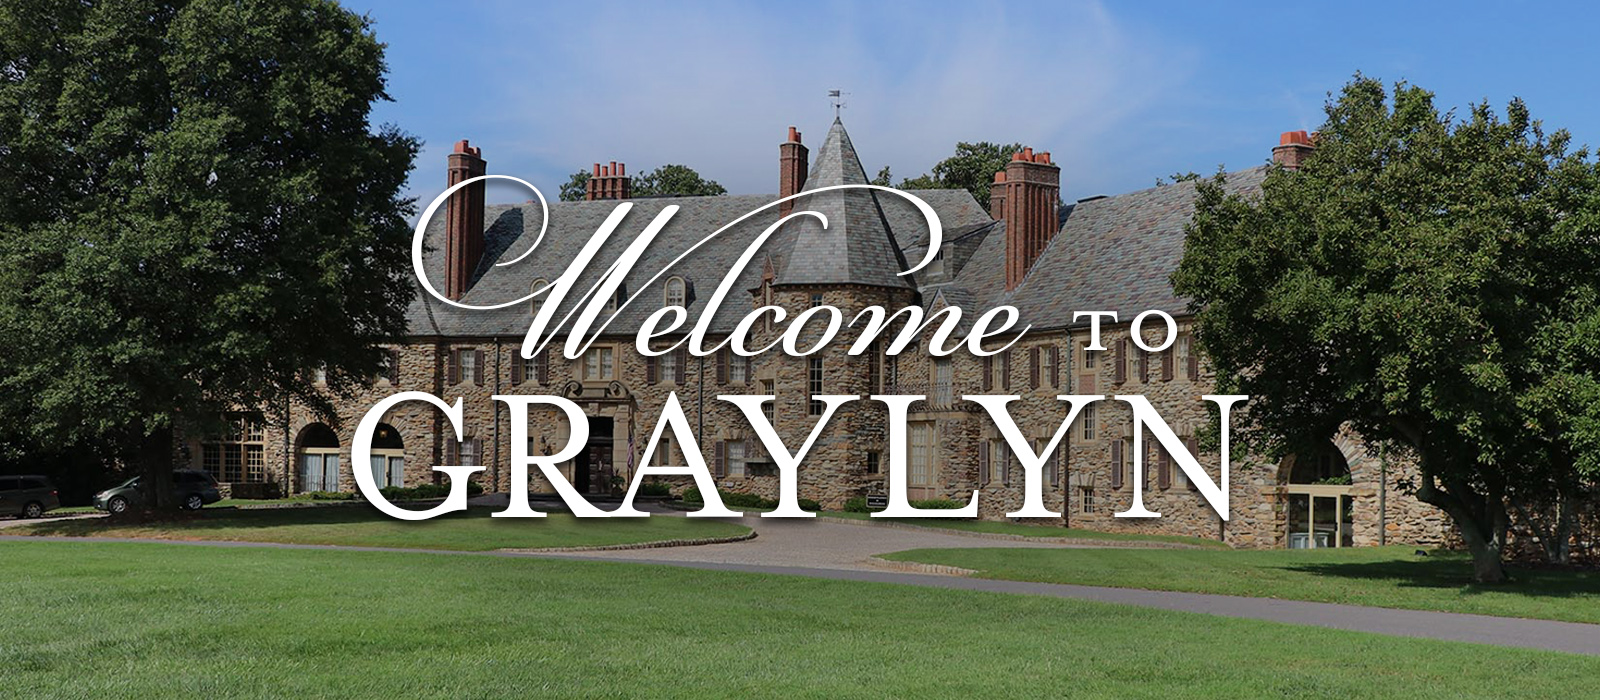 Welcome to Graylyn